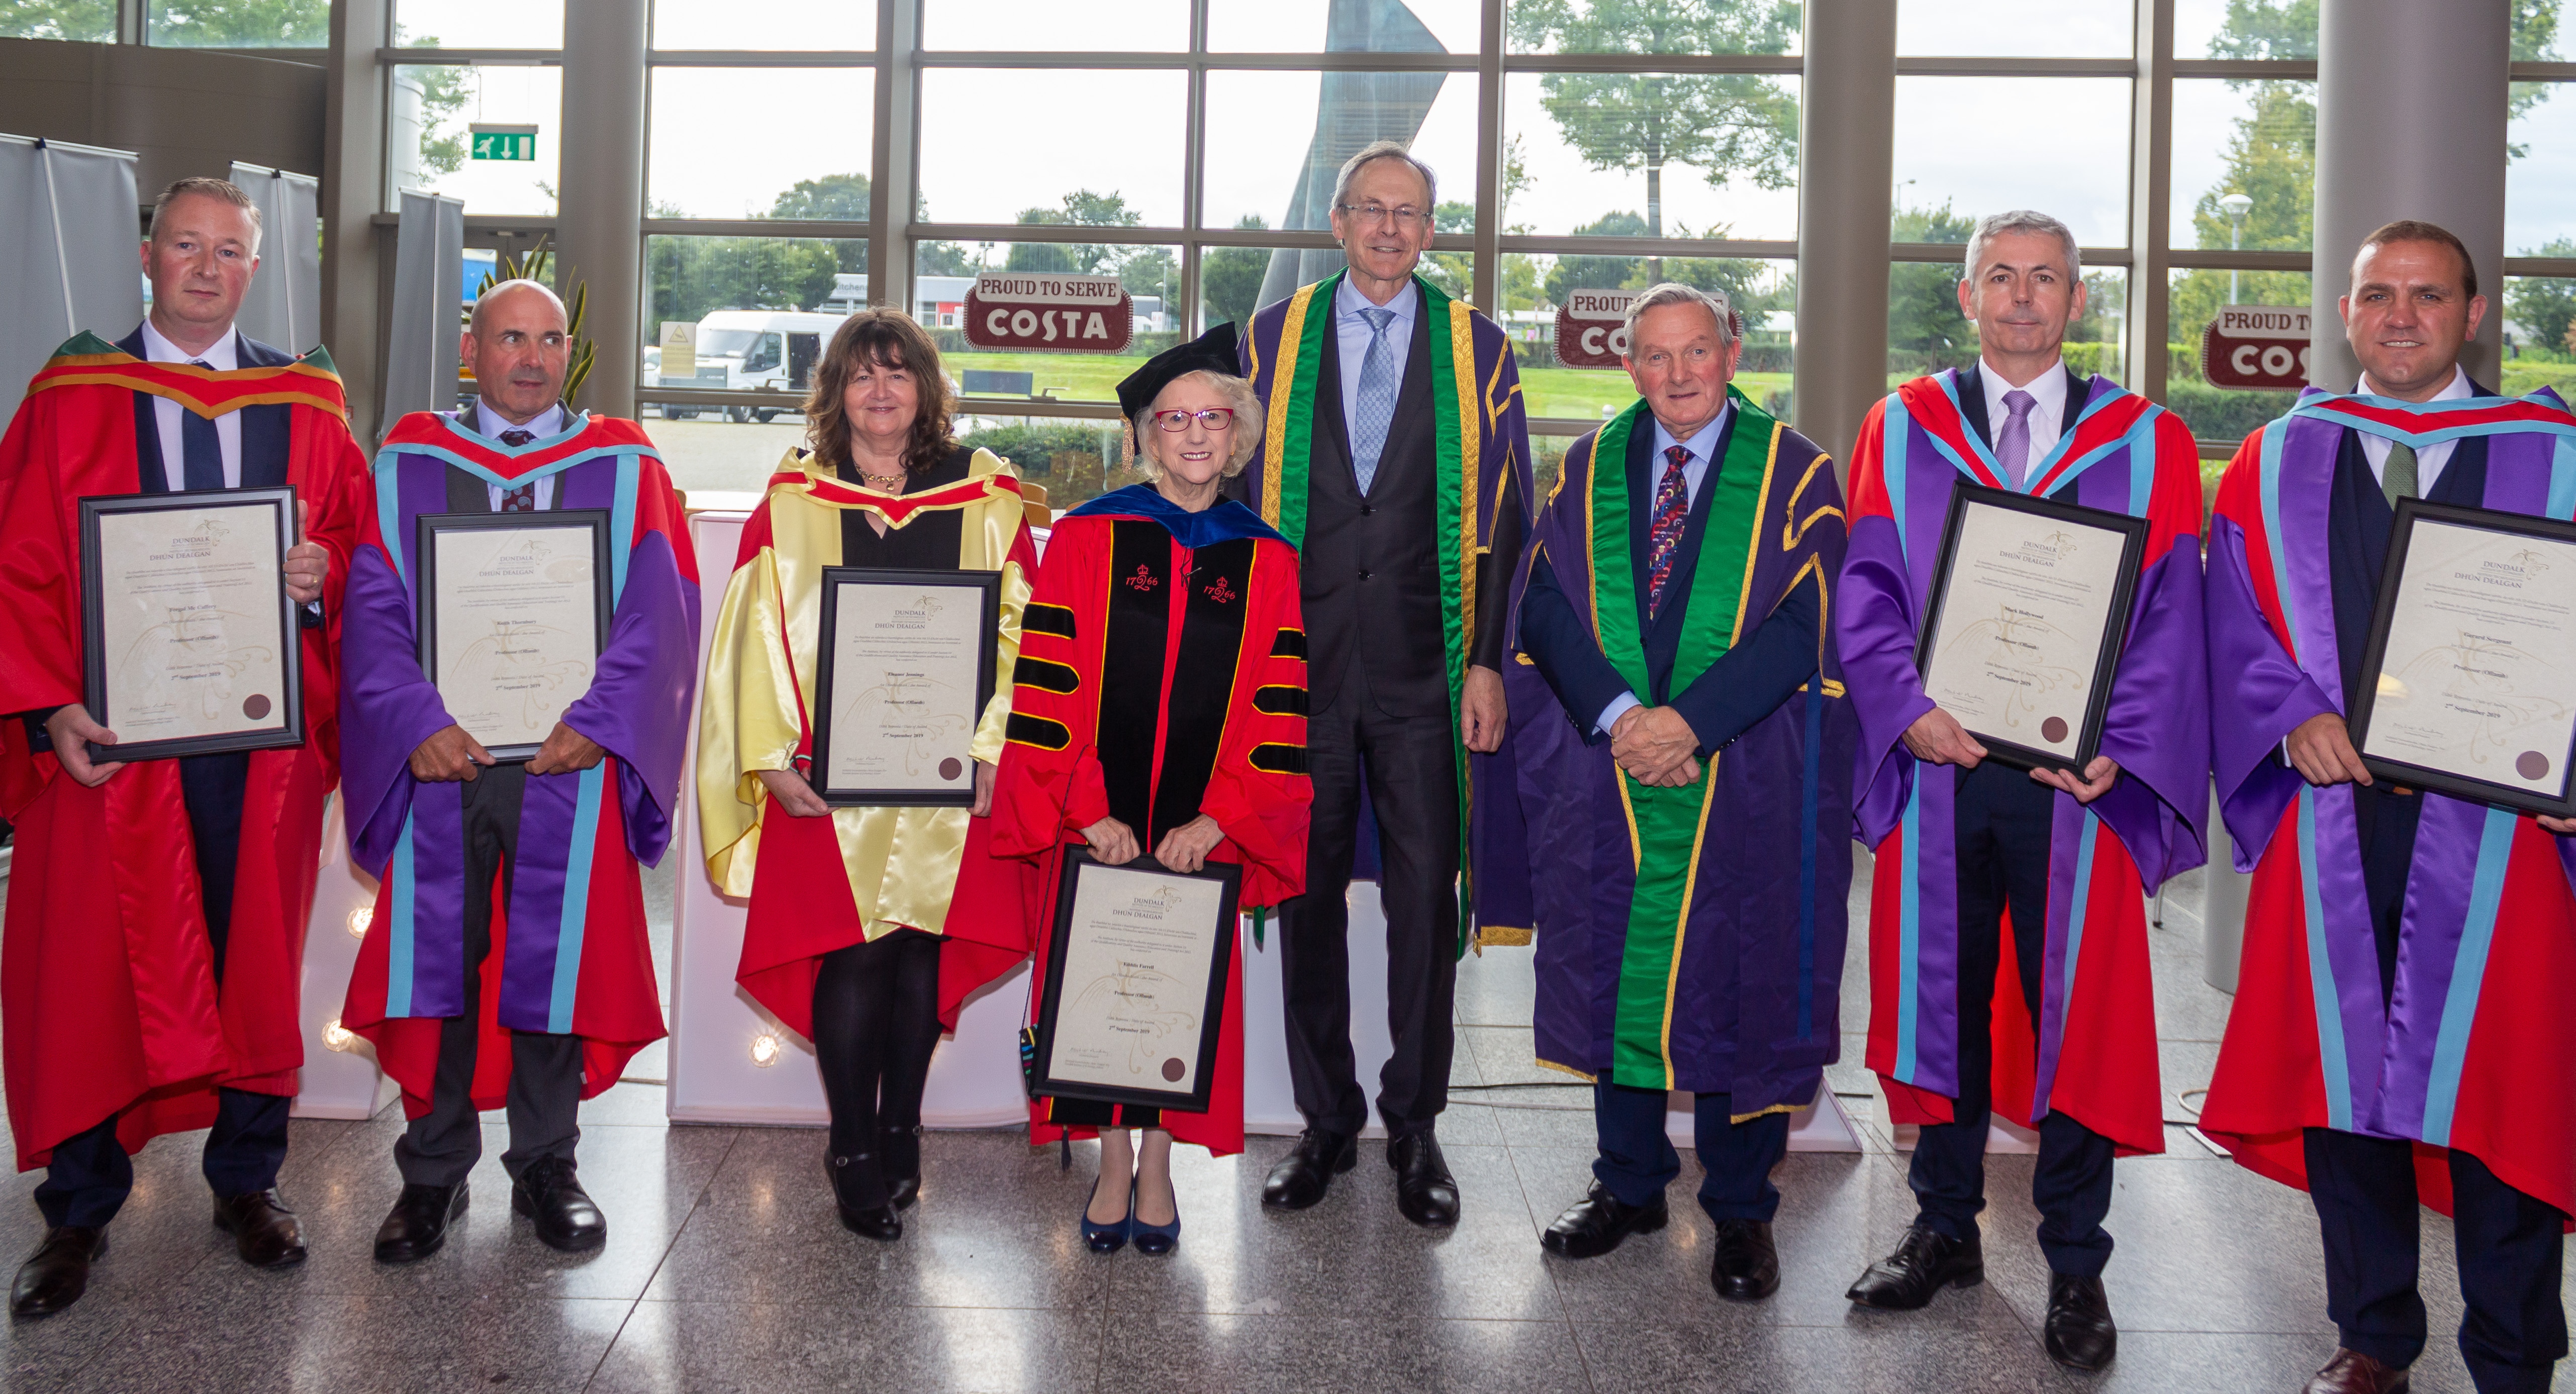 Congratulations to our six recently conferred Professors.  From left to right: Dr. Fergal Mc Caffery, Dr. Keith Thornbury, Dr. Eleanor Jennings, Dr. Eibhlis Farrell, Dr. Mark Hollywood and Dr. Gerard Sergeant.   Dr. Michael Mulvey and Clifford Kelly included